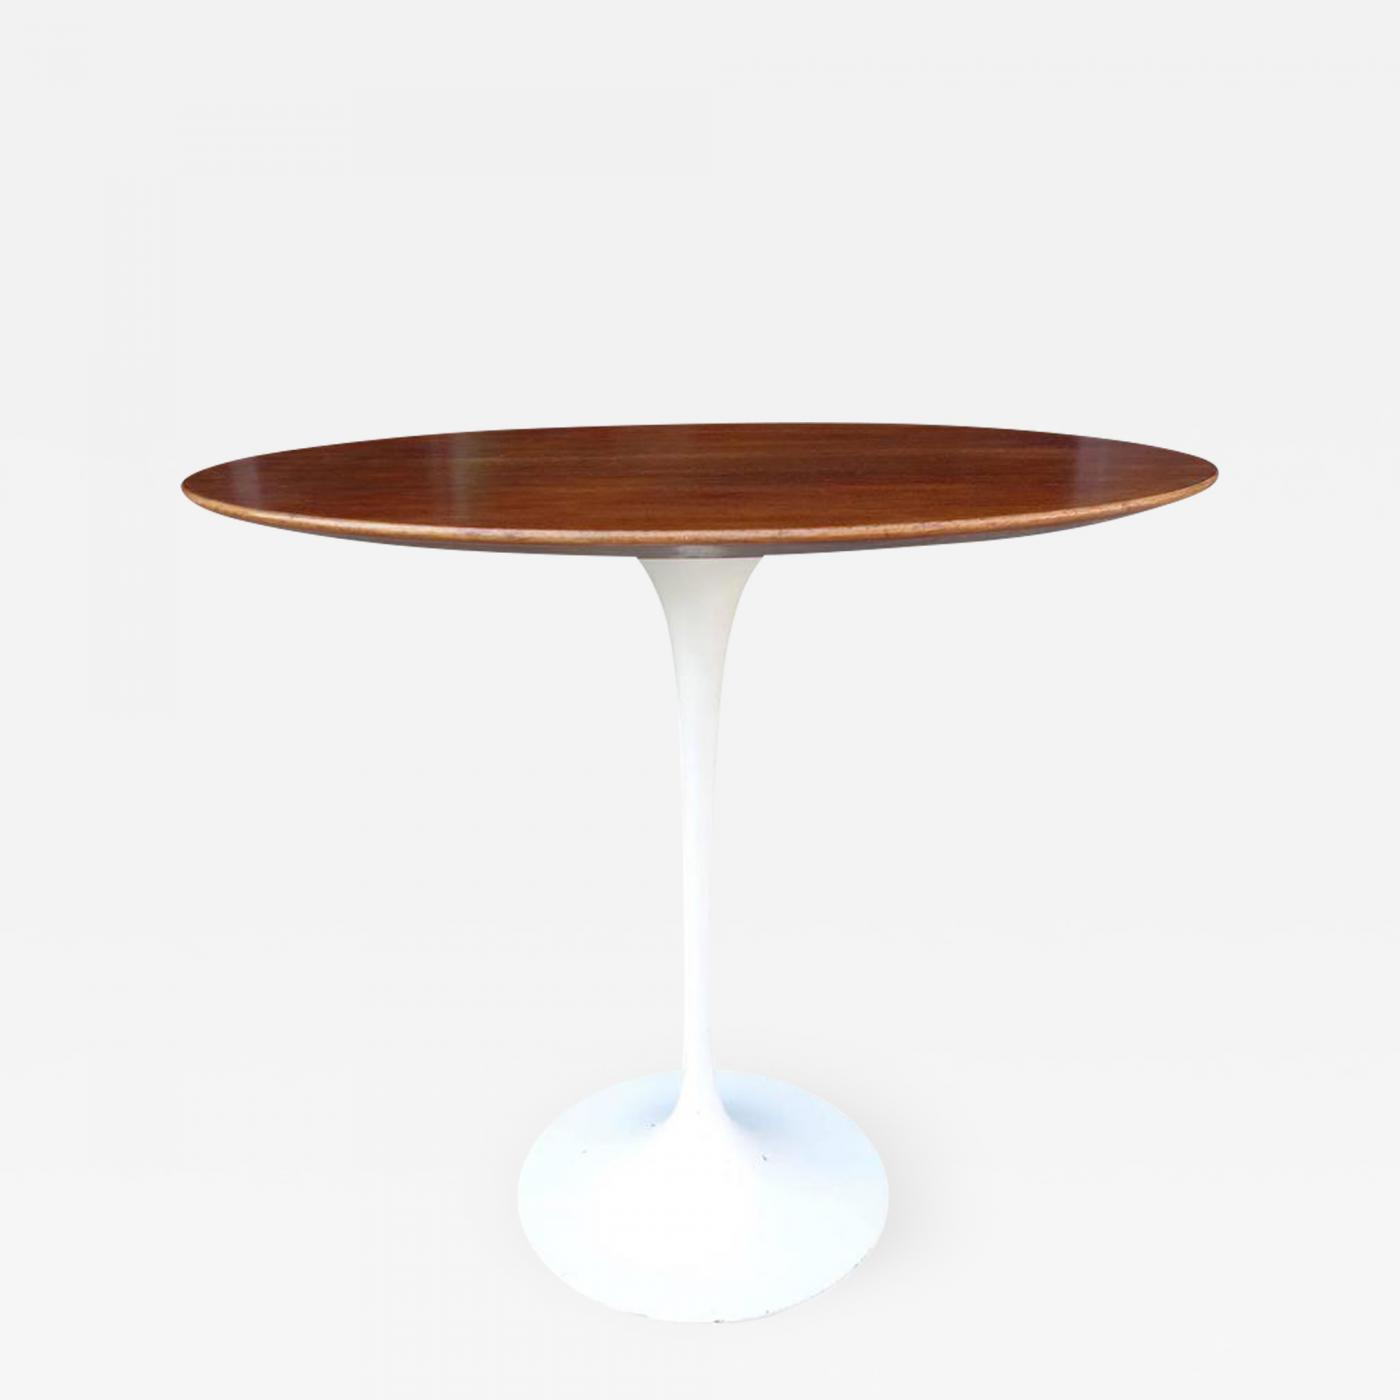 Saarinen Knoll Table Eero Saarinen Mid Century Saarinen Tulip Side Table For Knoll